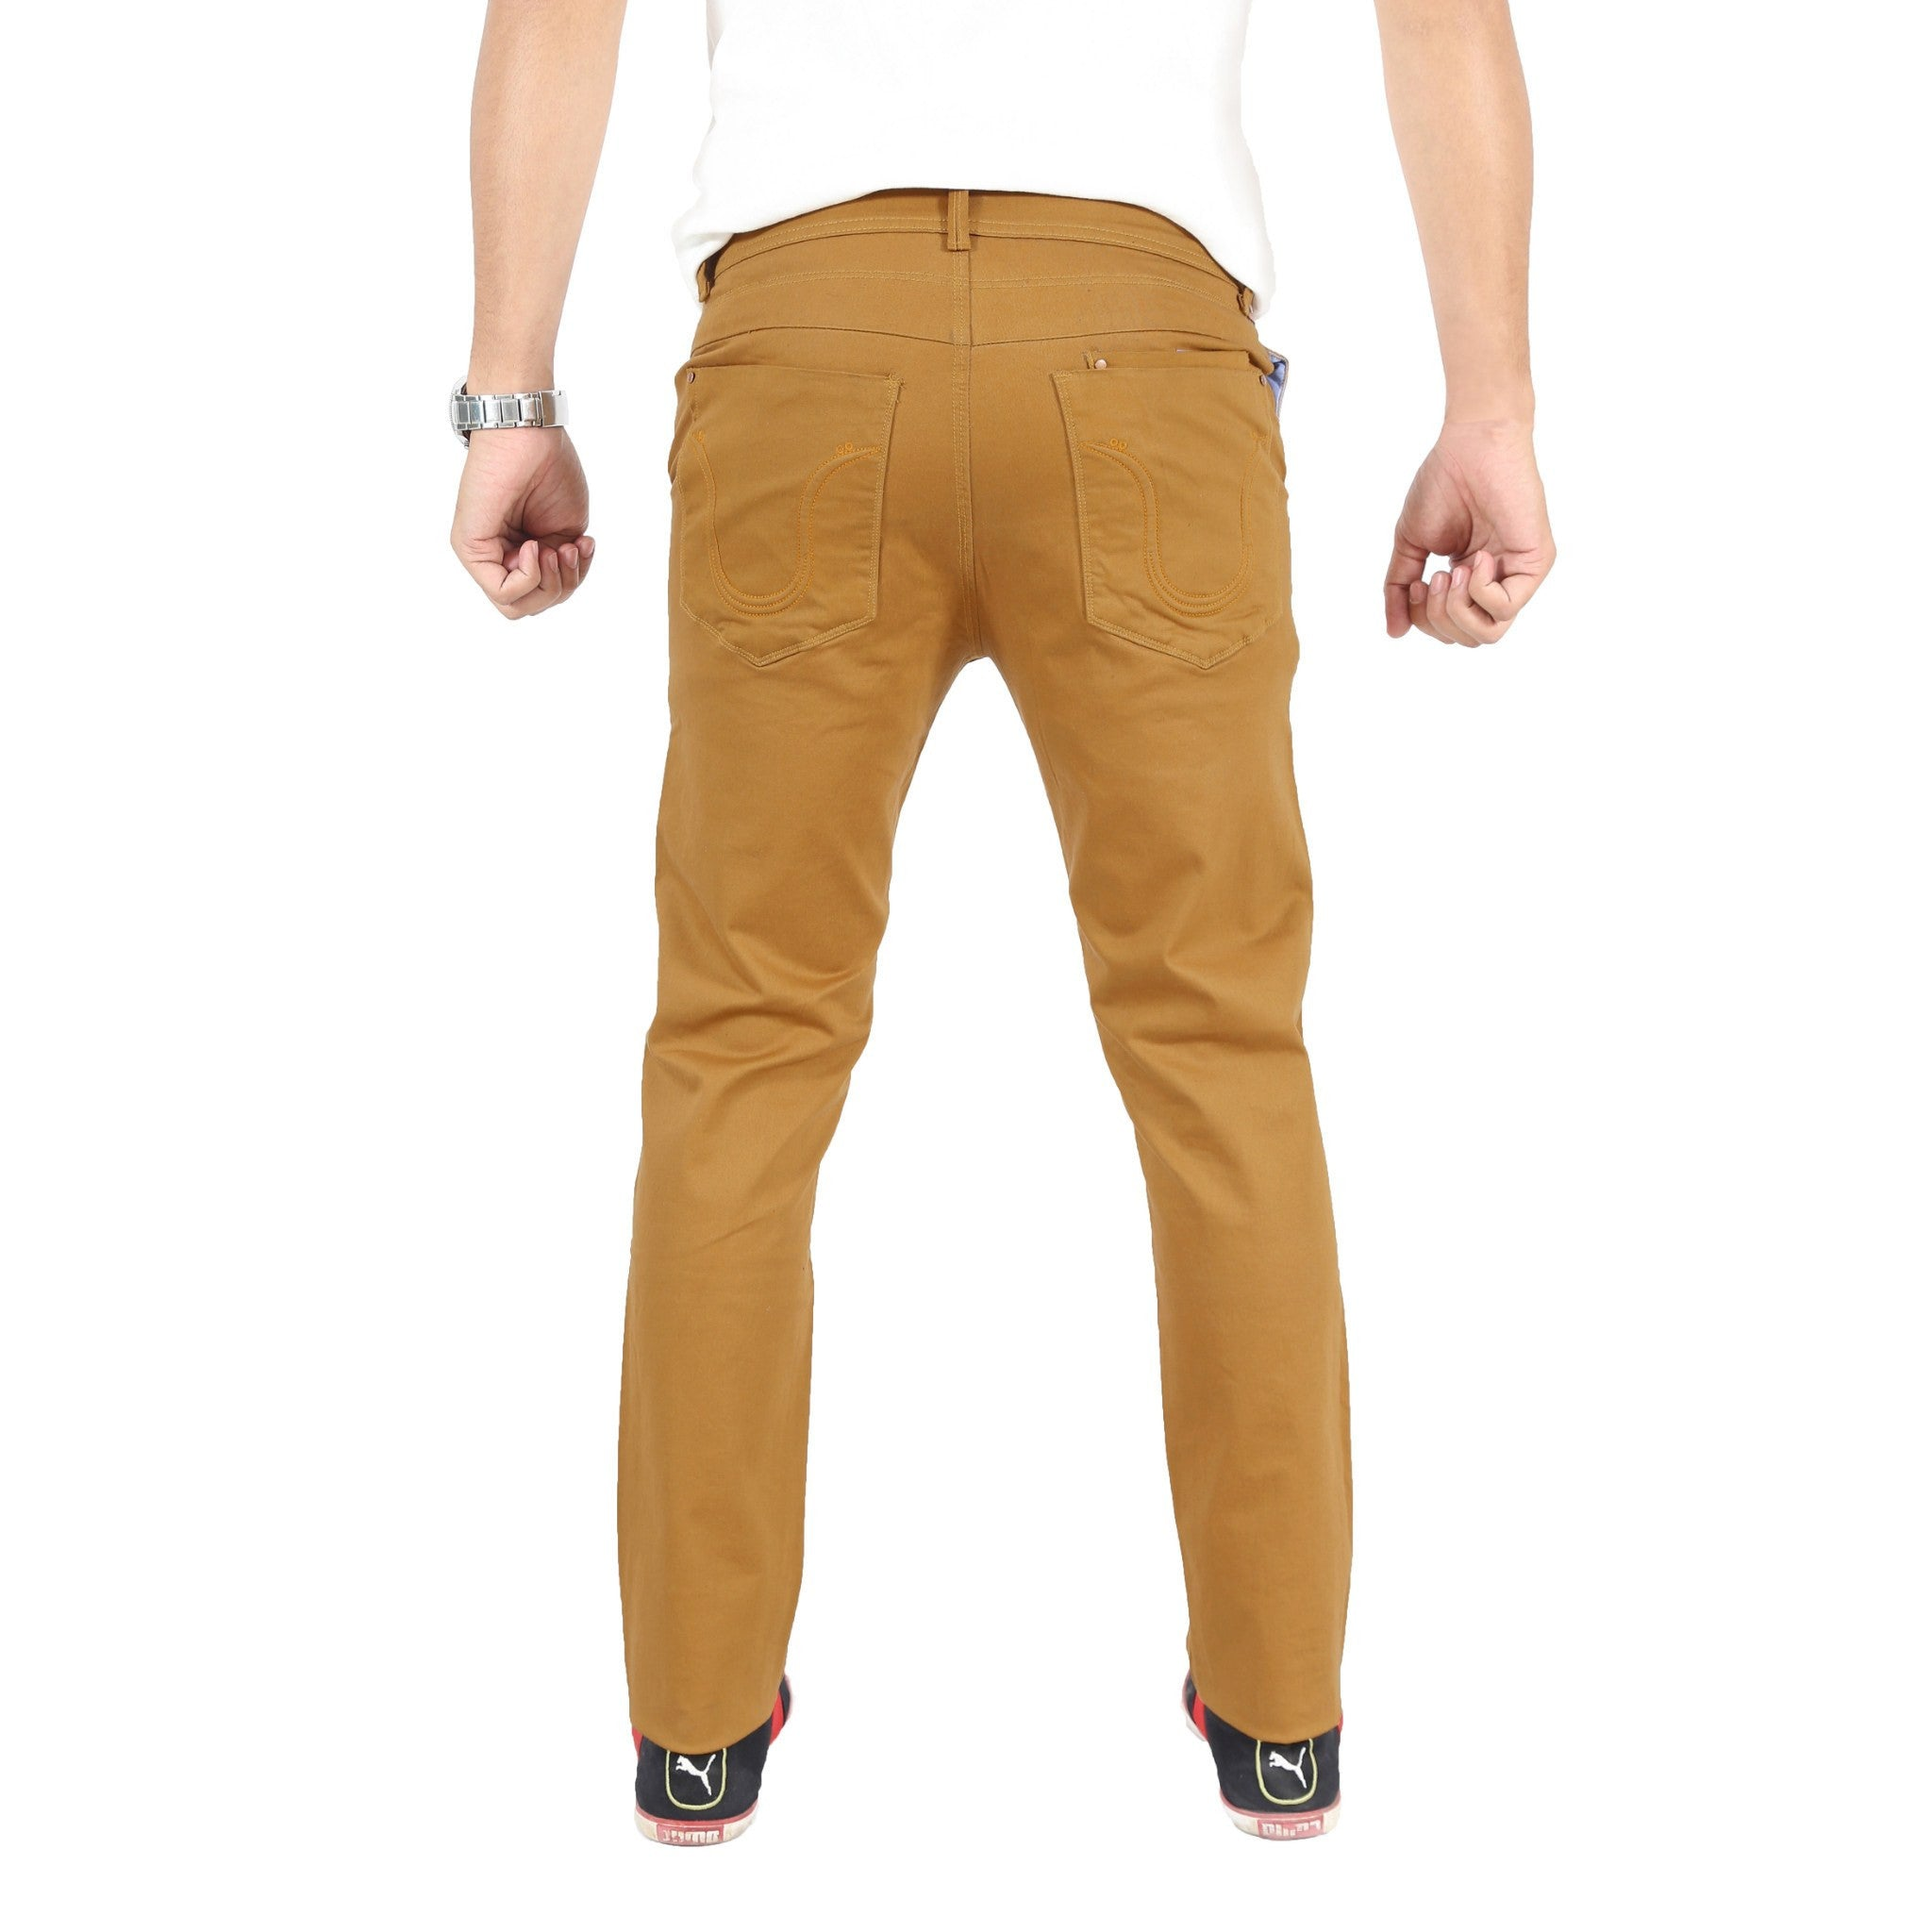 Uber Khaki Cotton Twill Elastene Trouser back view